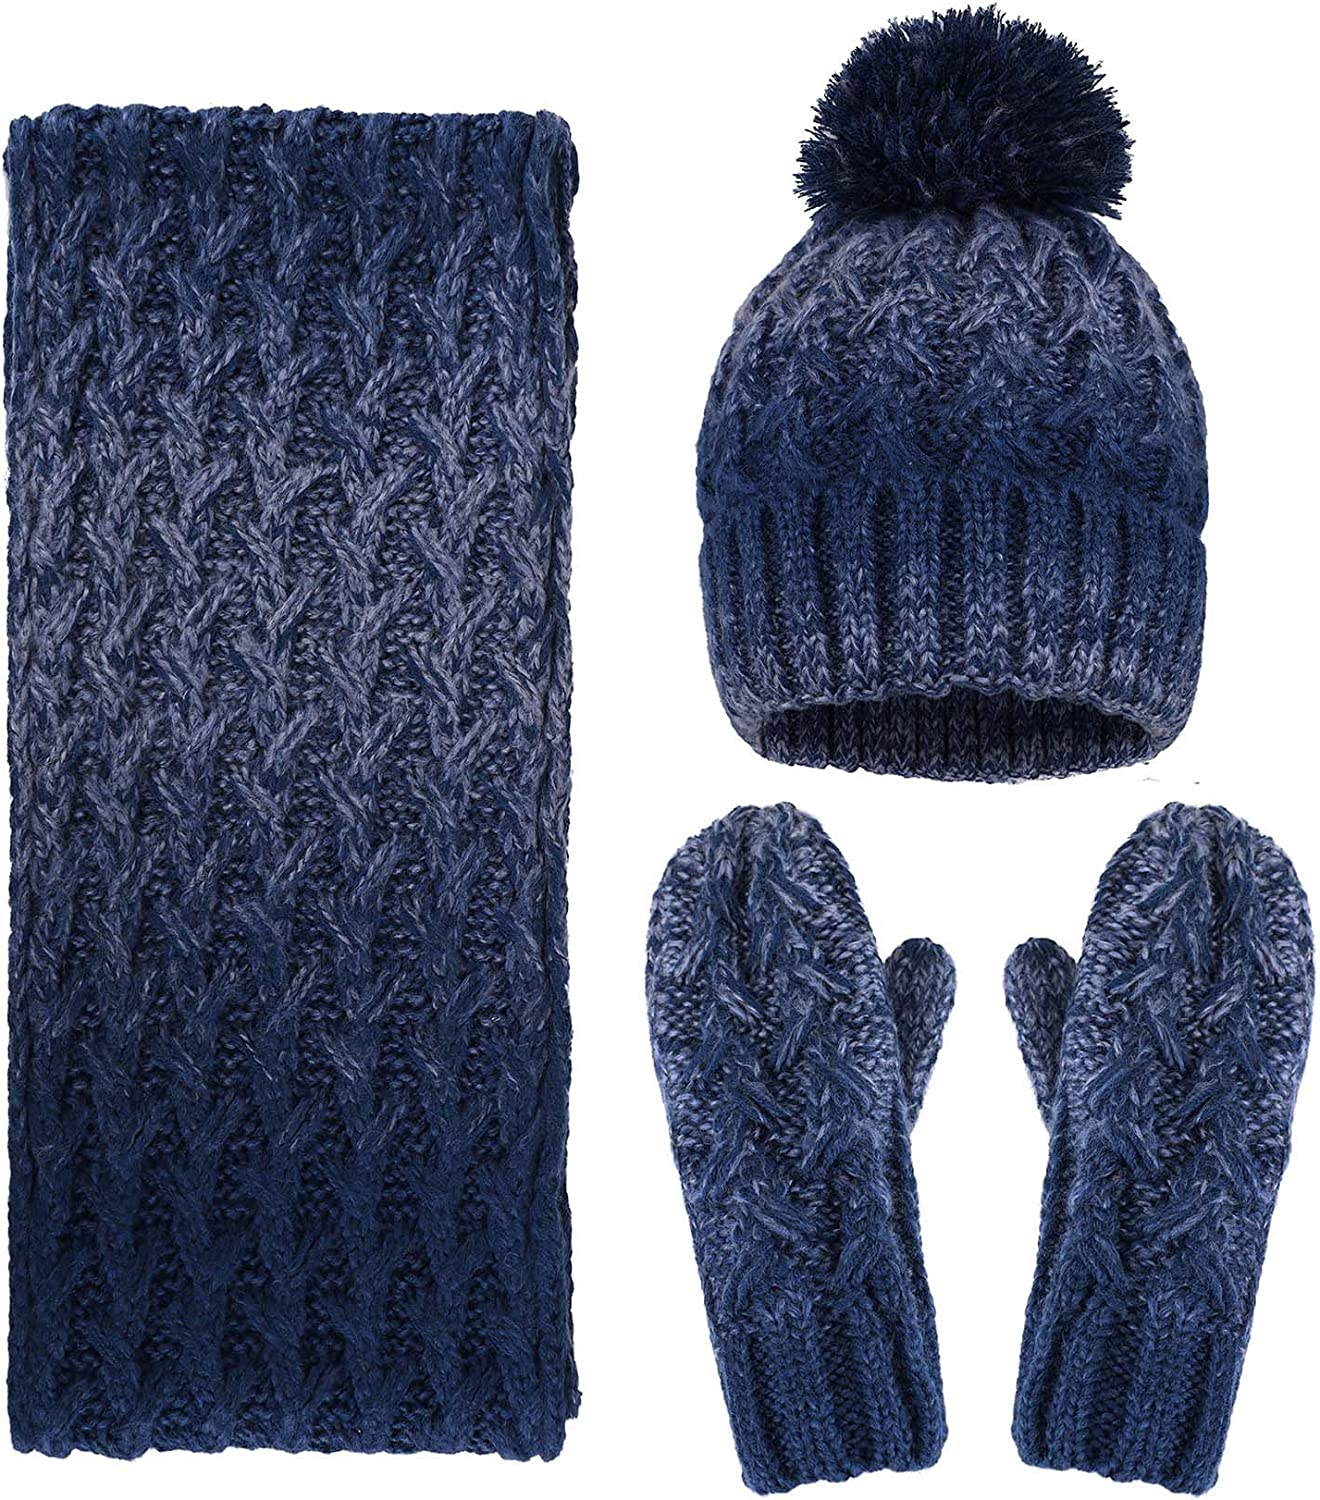 Adult 3 Piece Warm Knitted...